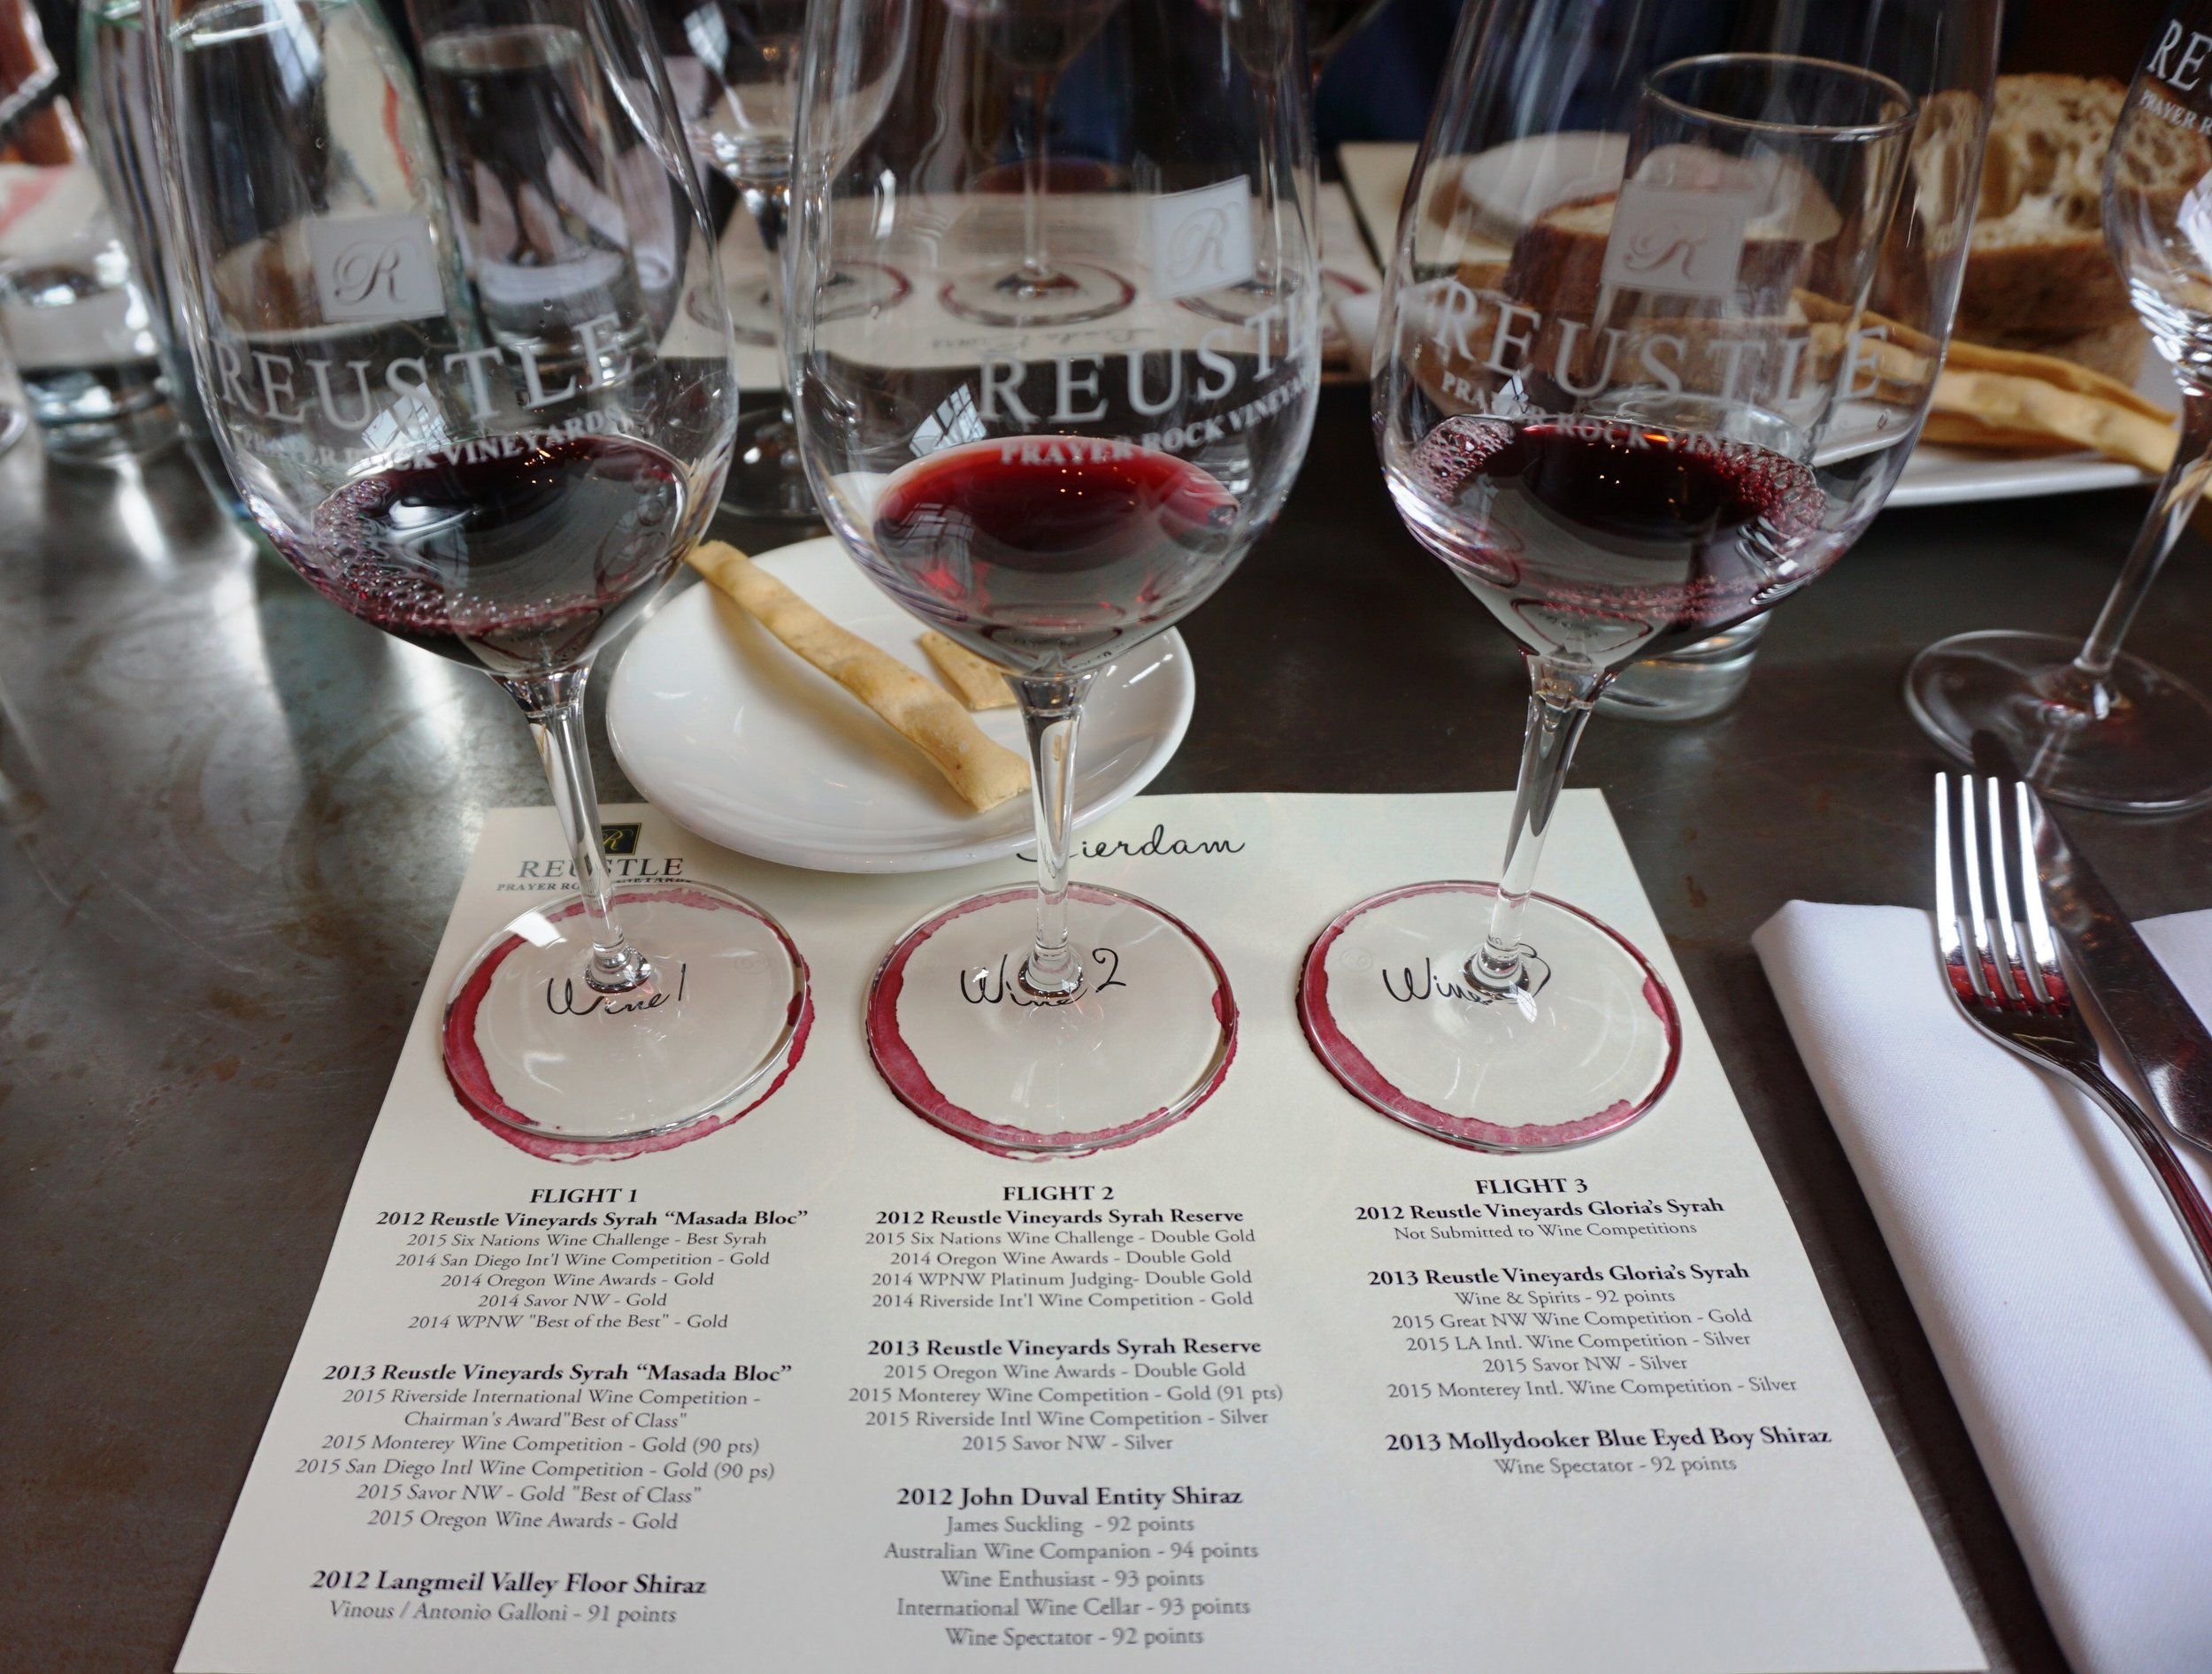 Stephen Reustle, owner and winemaker at Reustle – Prayer Rock Vineyards, and his wife, Gloria, held their first media luncheon ever at The Bent Brick in NW Portland recently to celebrate their Six Nations Wine Challenge win with their 2012 Syrah Masada Bloc. Viki Eierdam